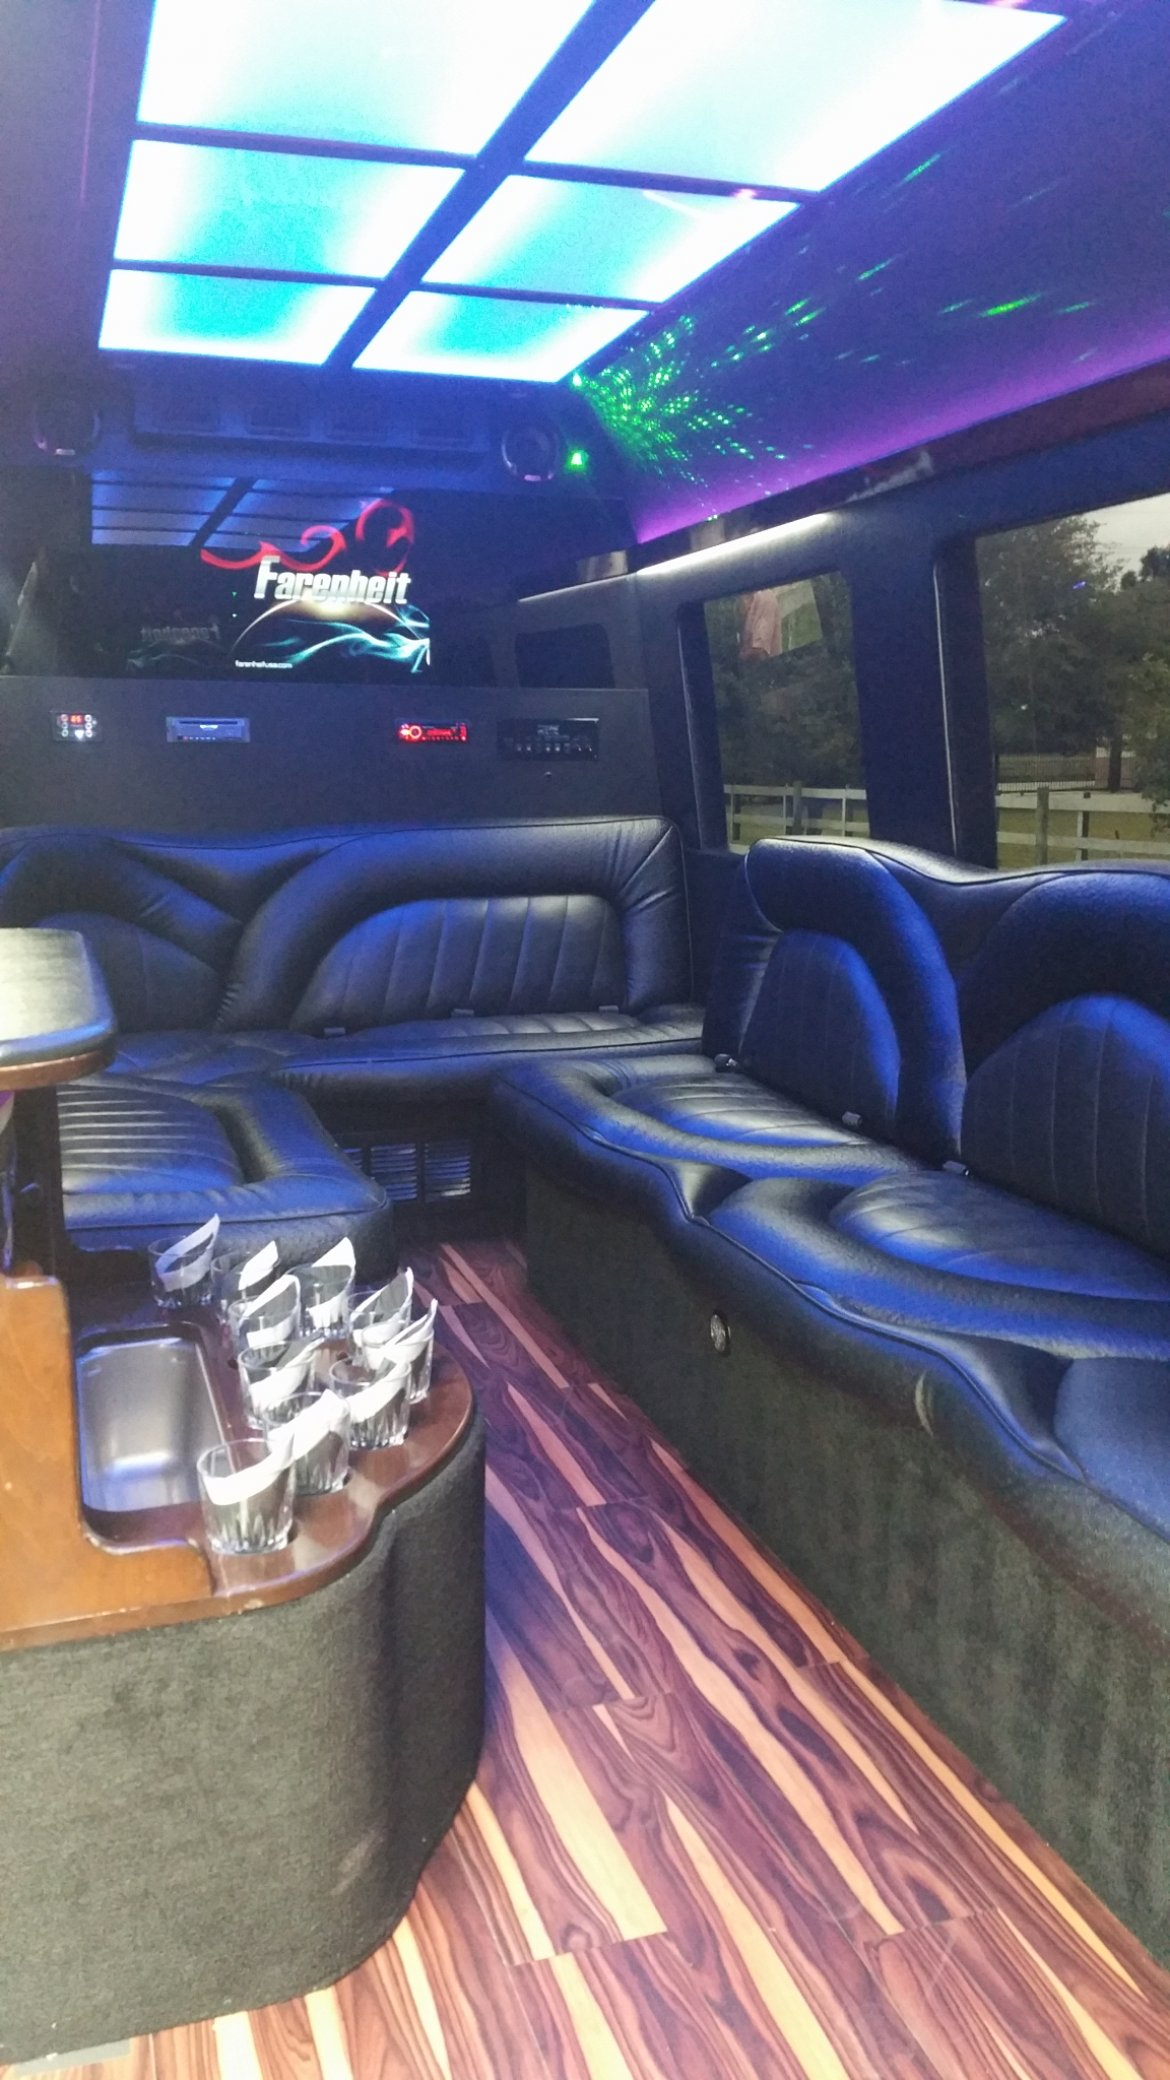 Used 2014 mercedes benz sprinter 2500 for sale ws 11221 for 2014 mercedes benz sprinter 2500 for sale